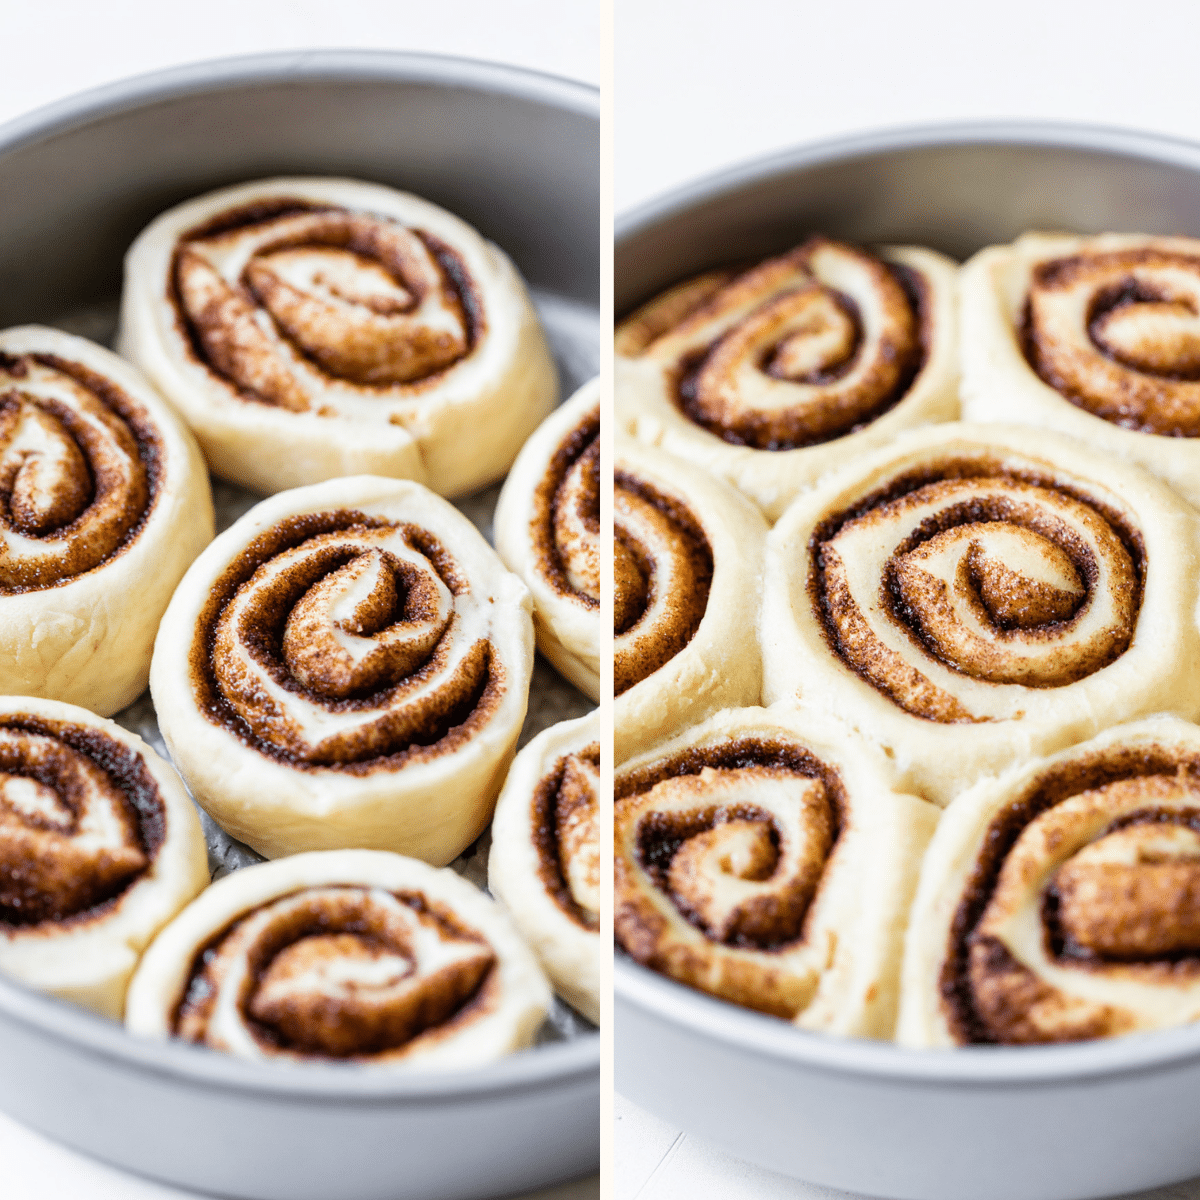 uncooked cinnamon rolls in a cake pan